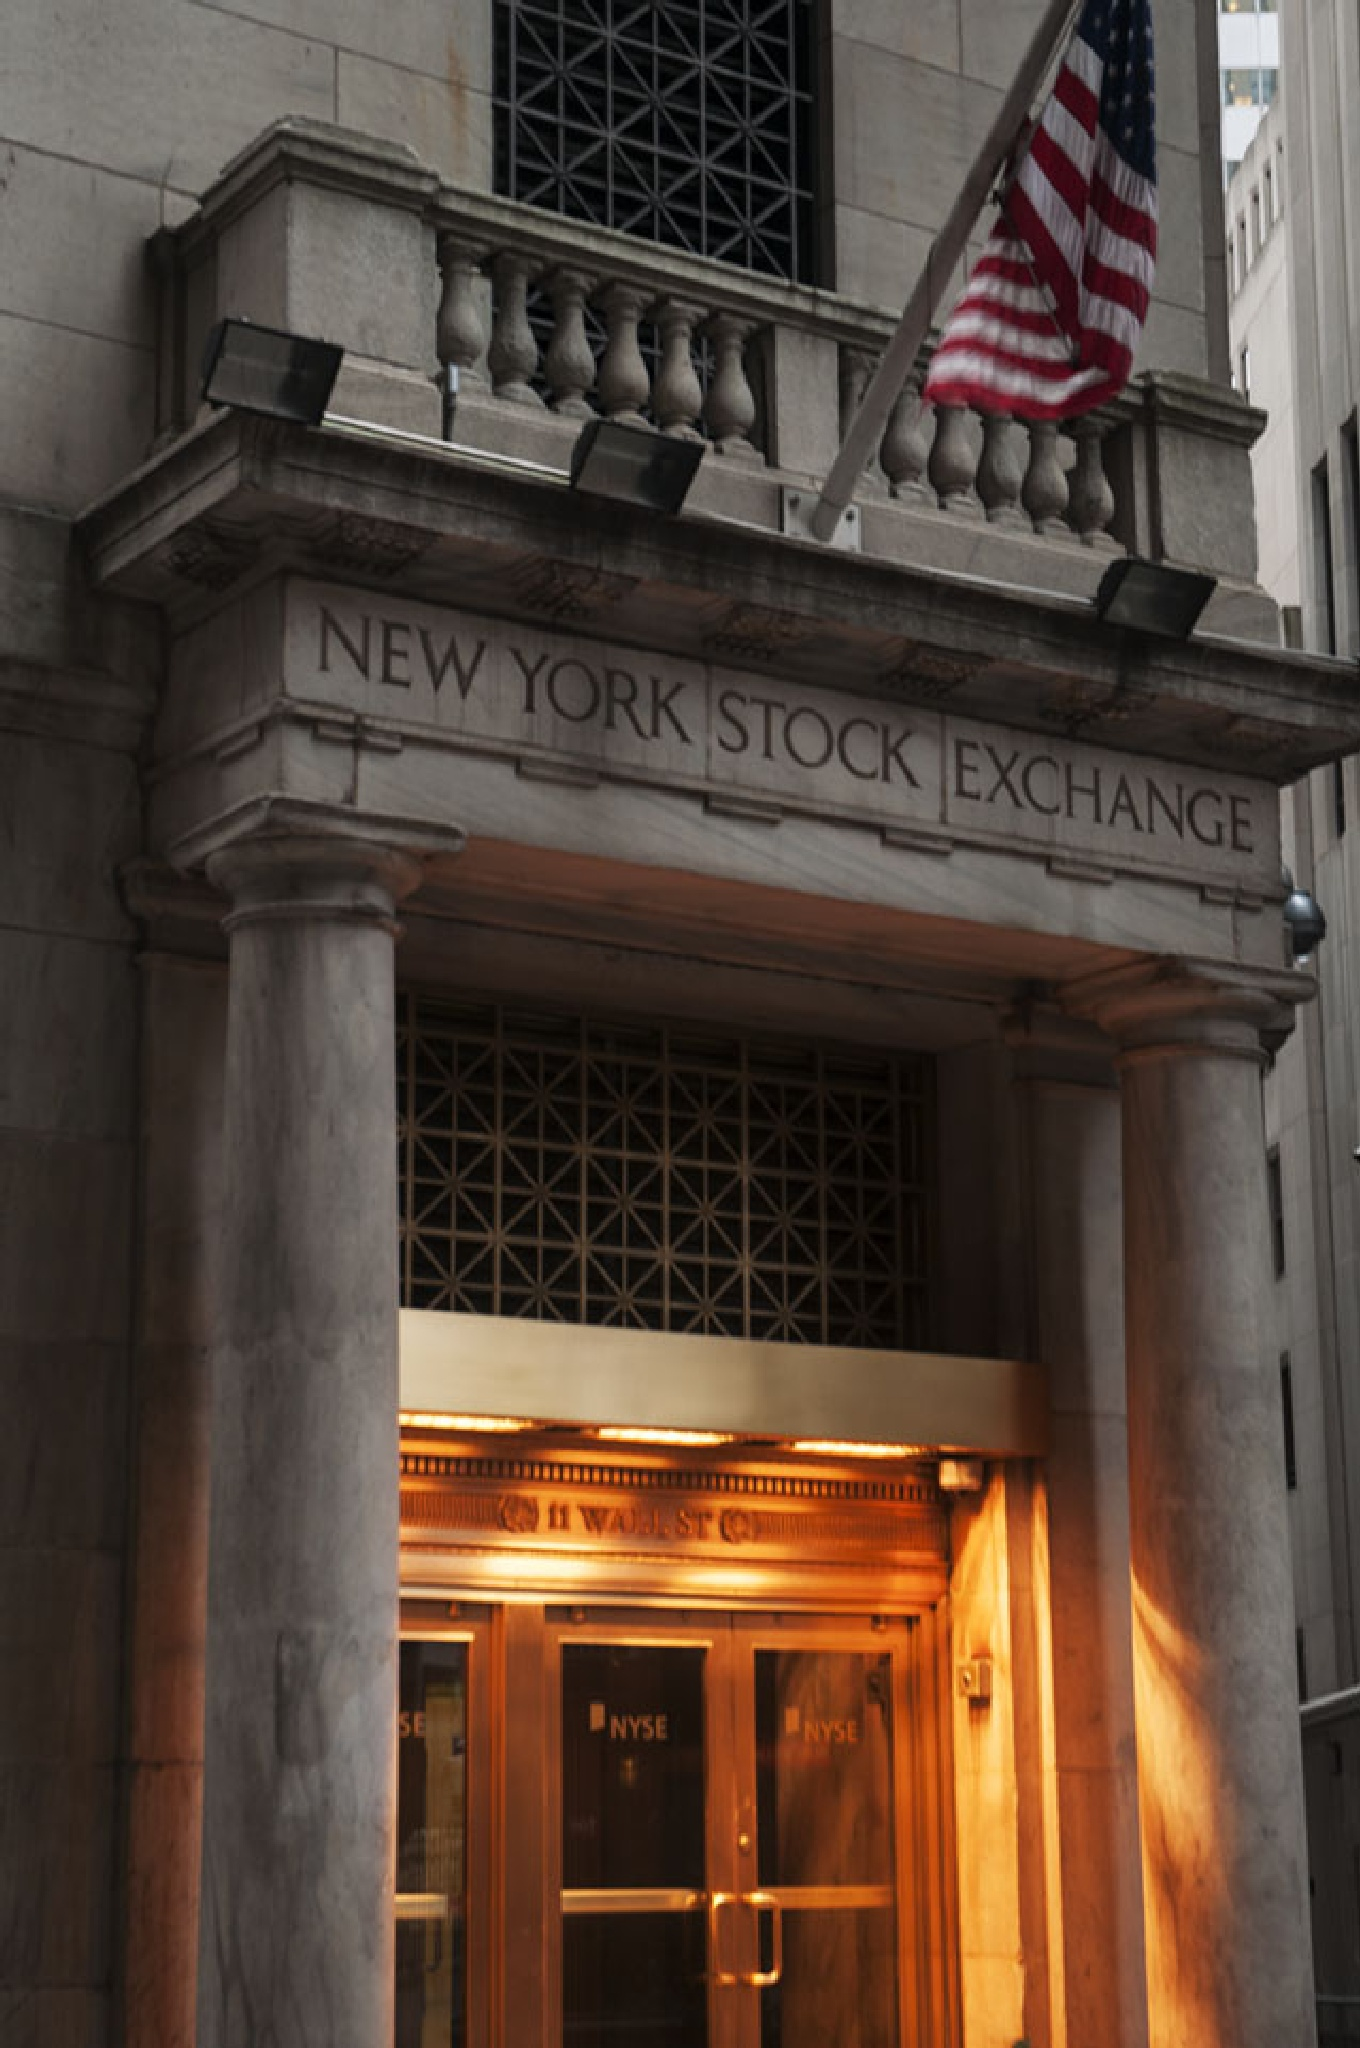 NY Stock Exchange by Wayne L. Talbot